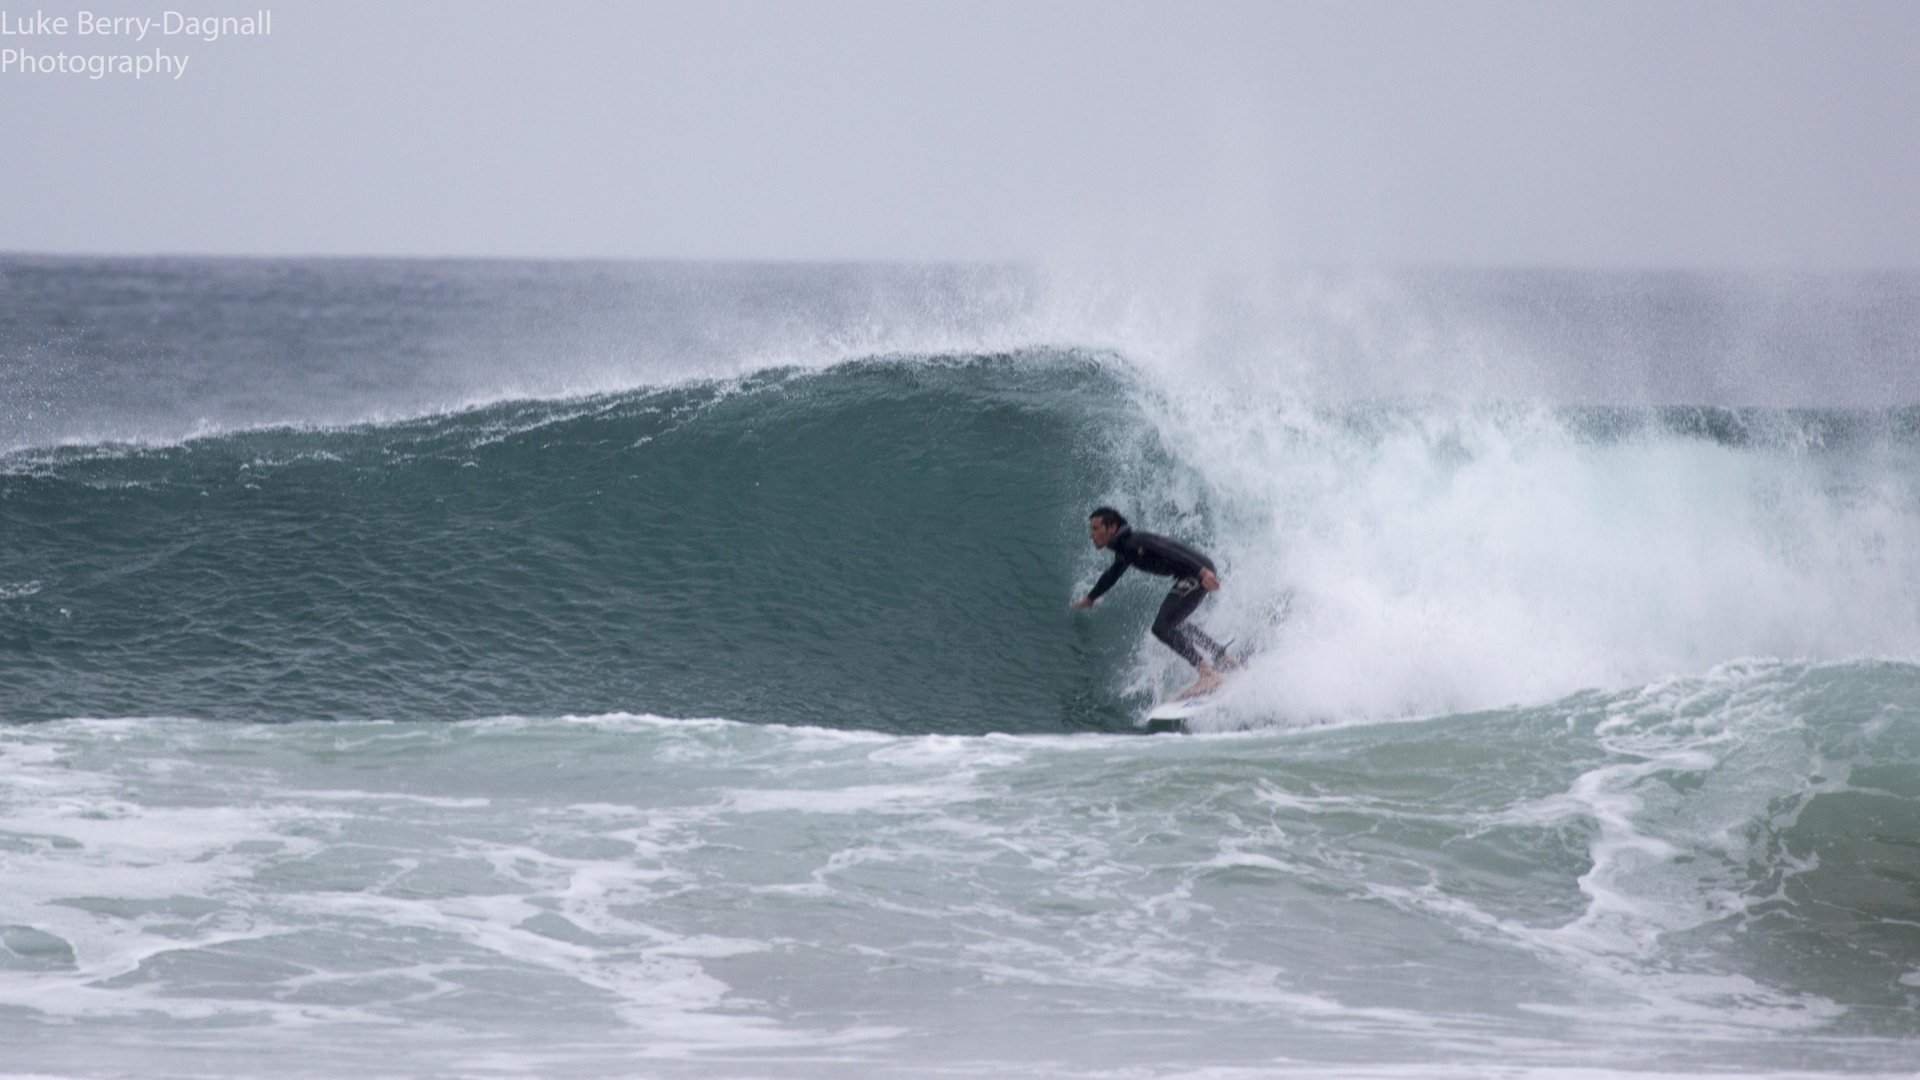 lukeberrydagnall's photo of Newquay - Fistral North